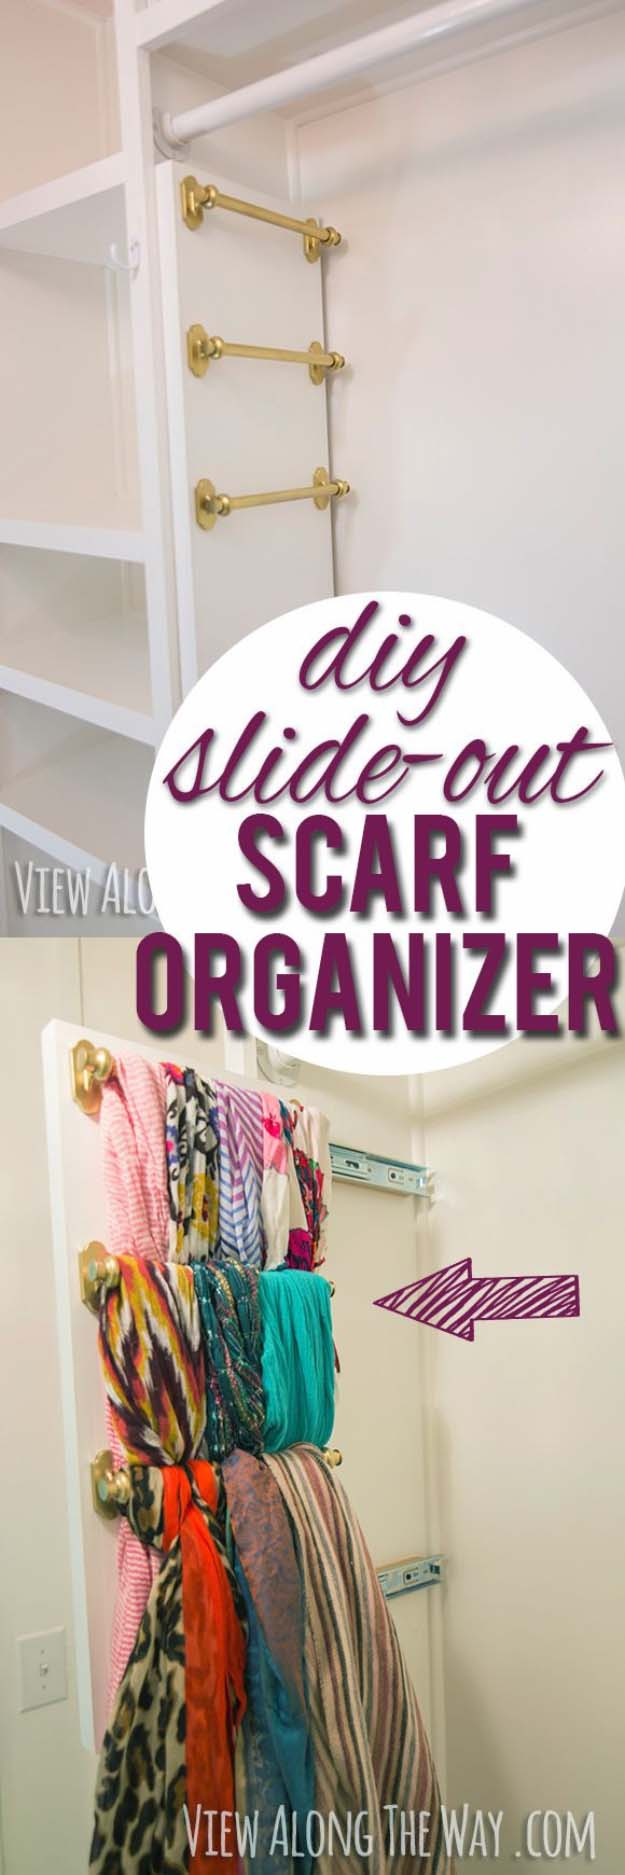 Build your own DIY Slide-Out Scarf and Belt Organizers following this step by step tutorial | View Along The Way - Closet Organization Ideas and Space Saving Hacks